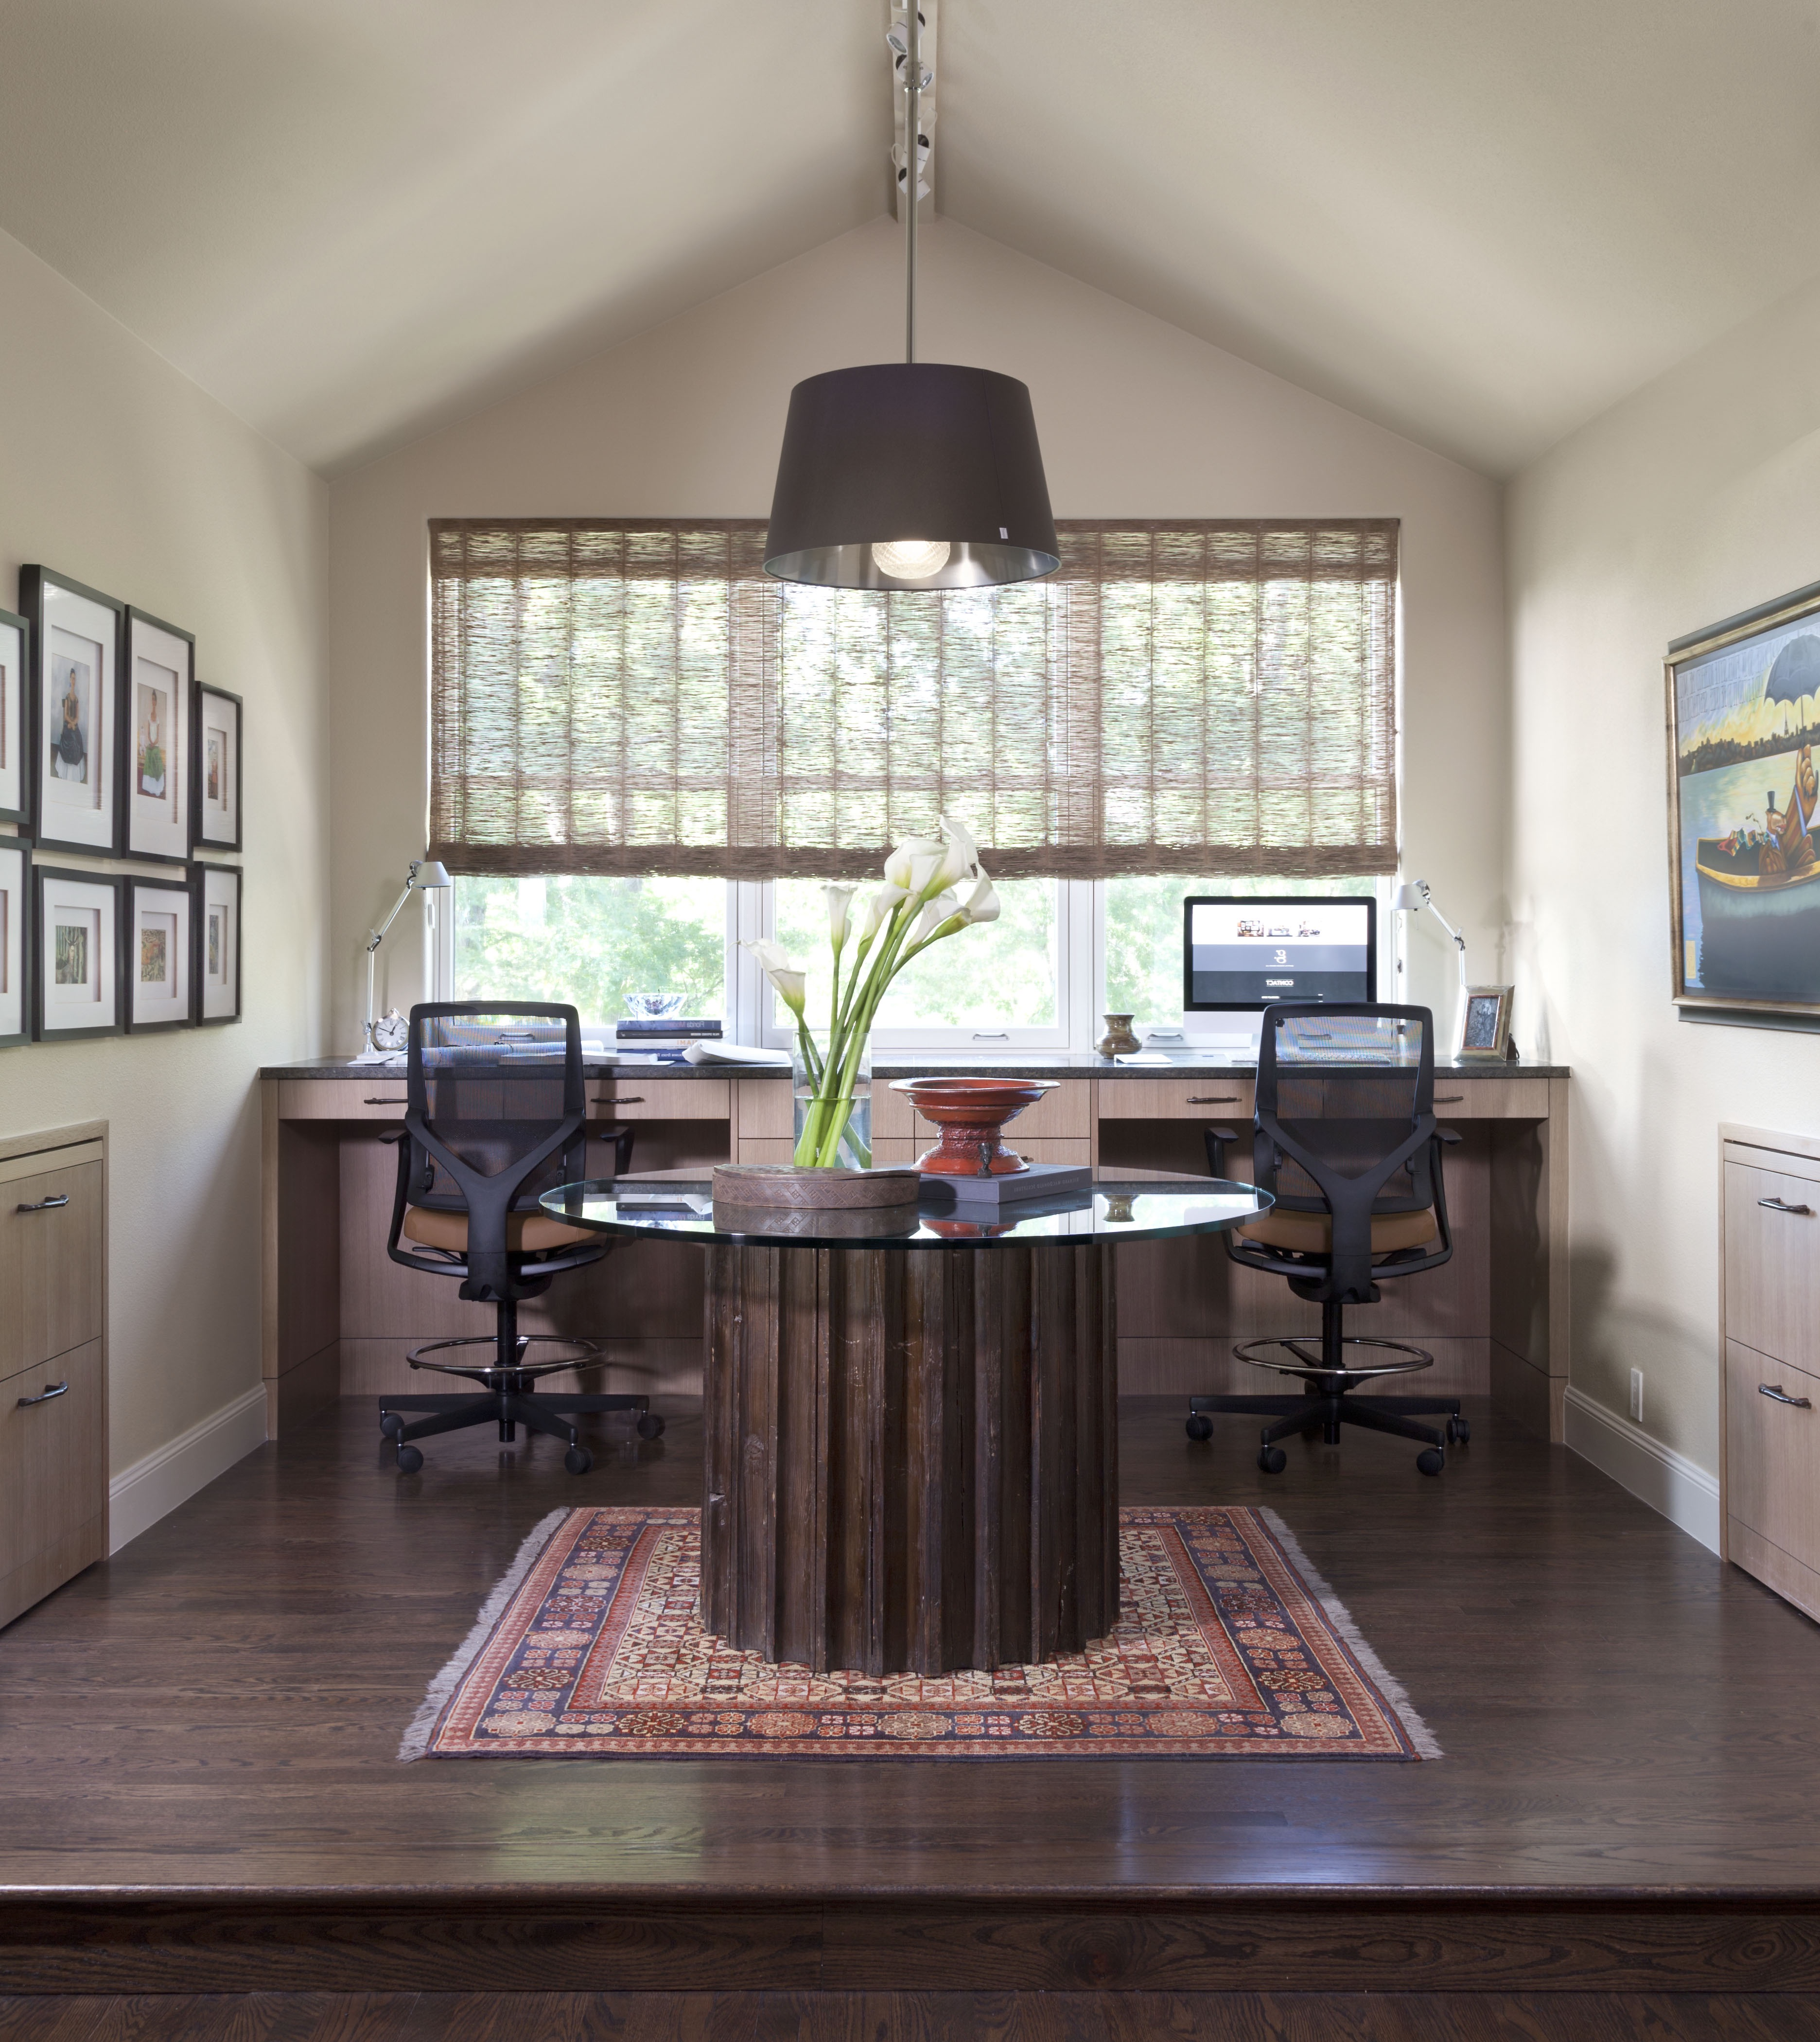 Home Office With Vaulted Ceiling (Image 25 of 50)